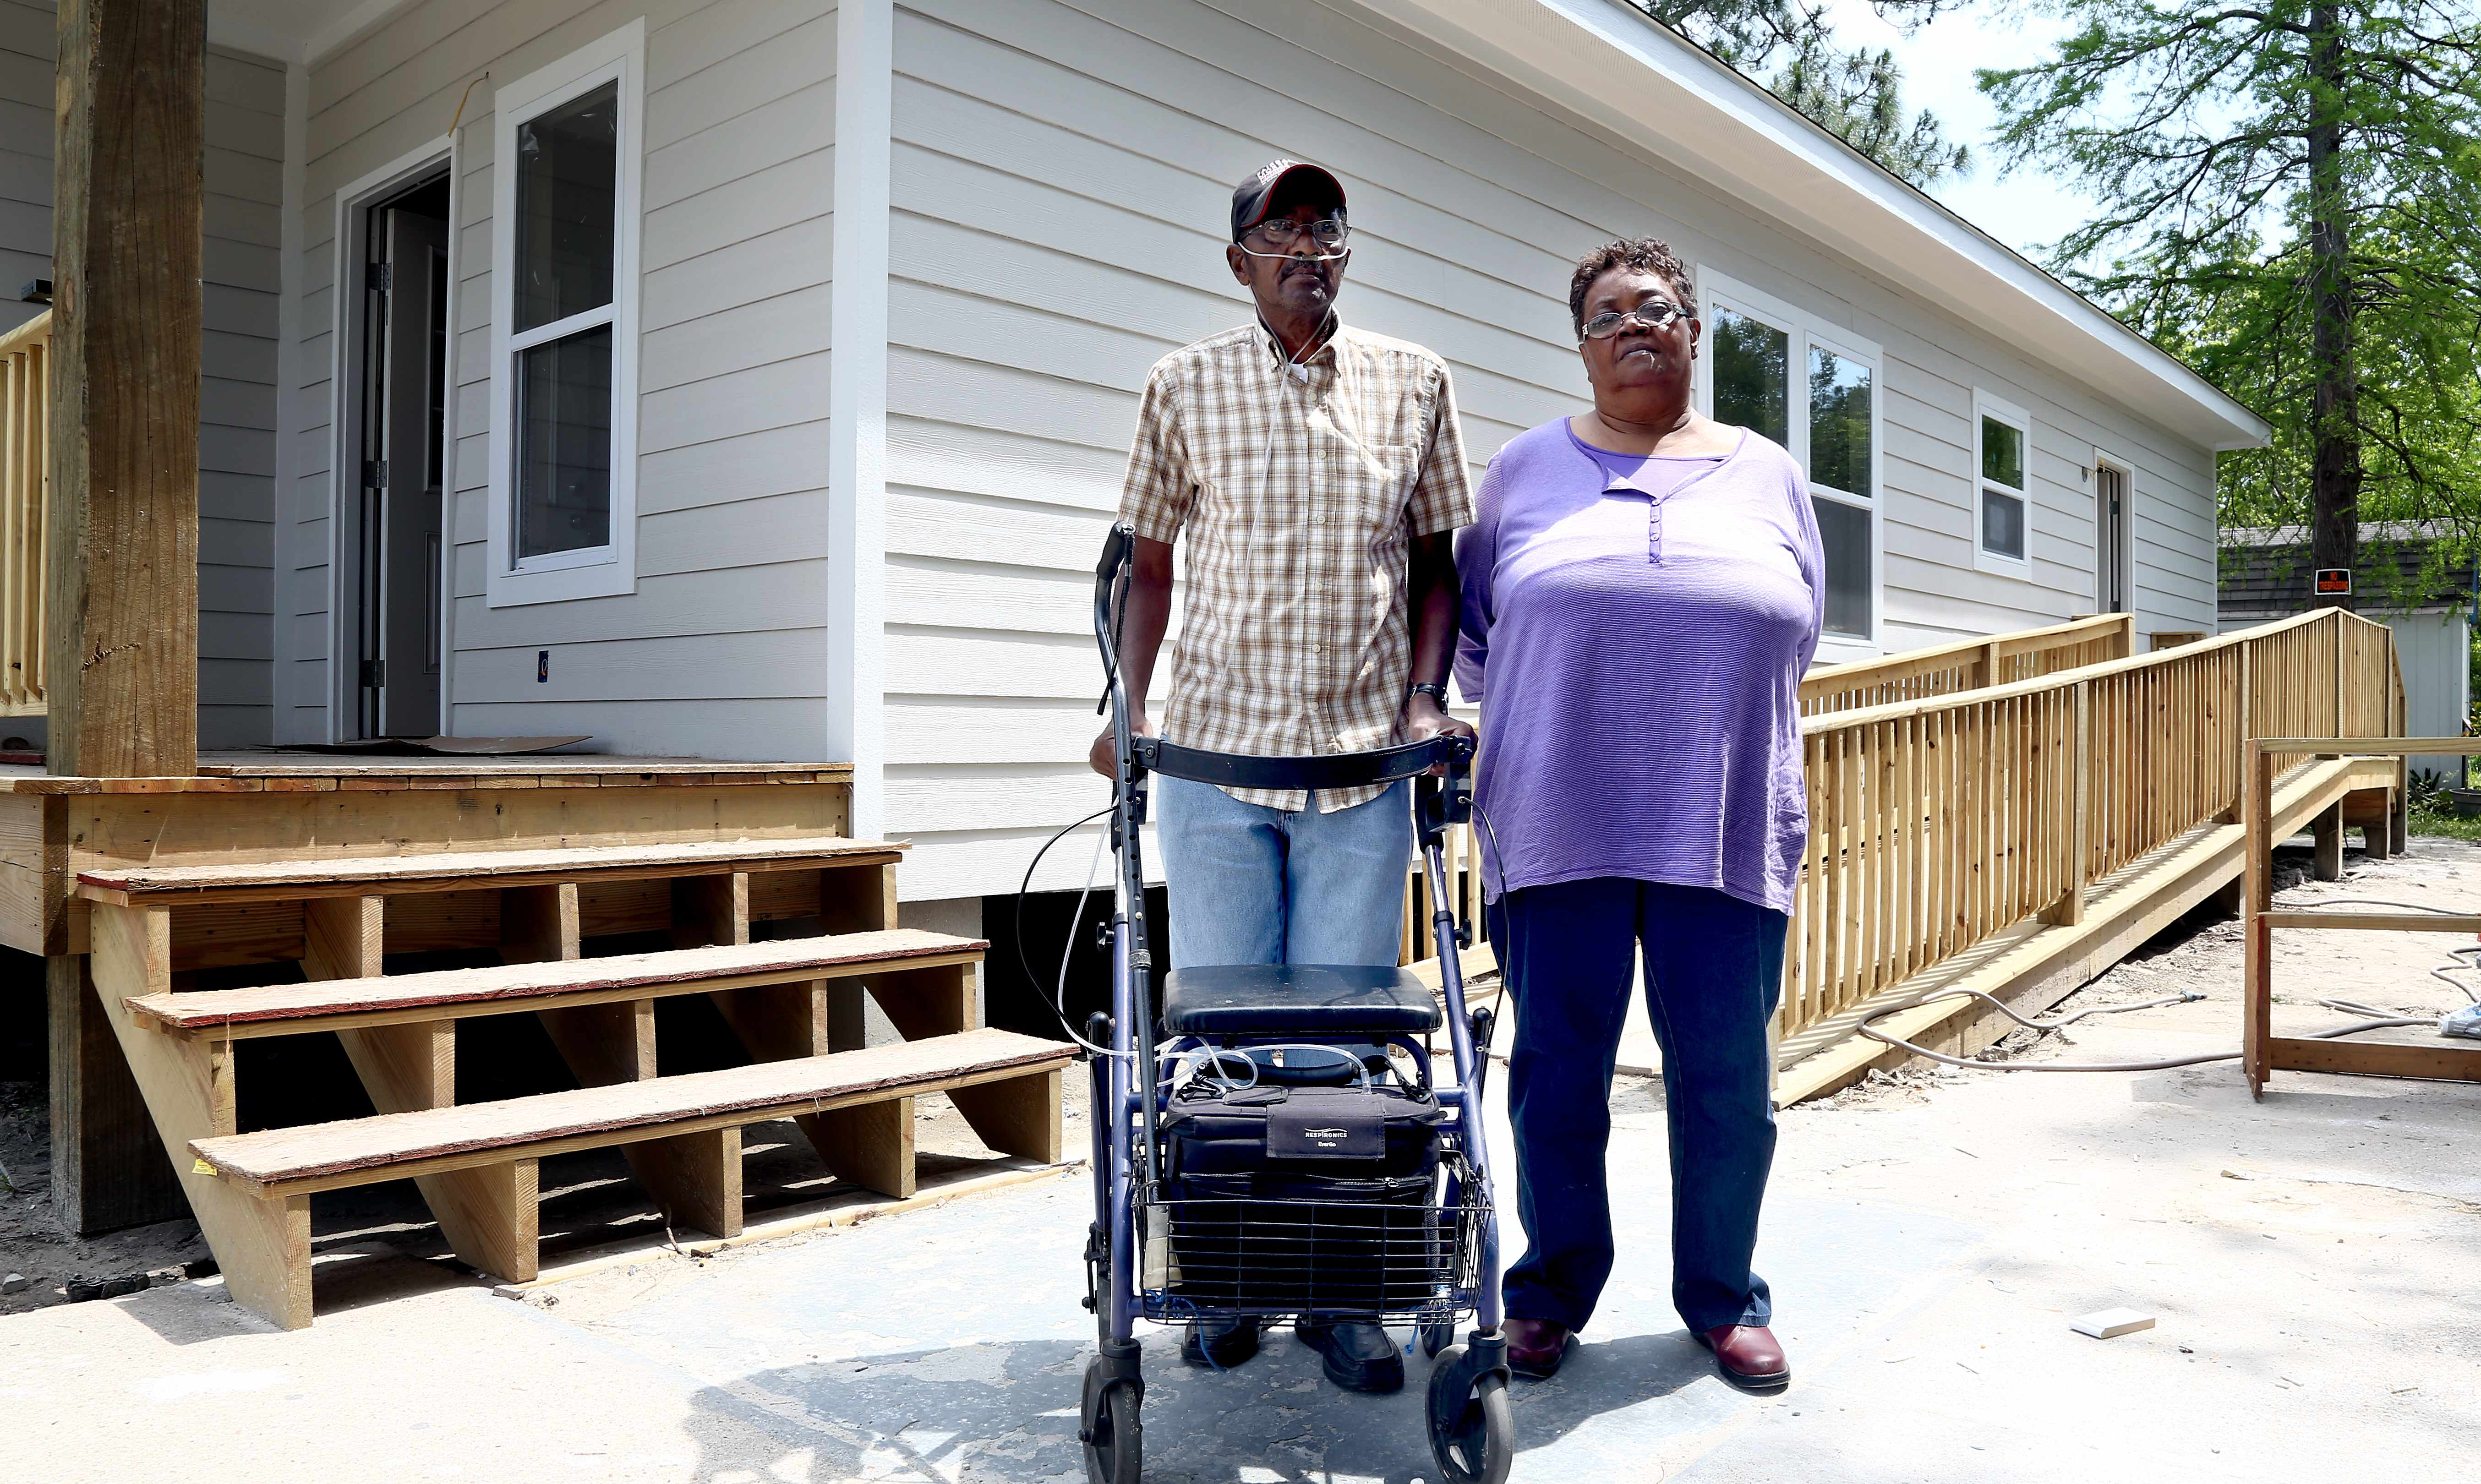 The Taylors, residents of Gulfport, Mississippi